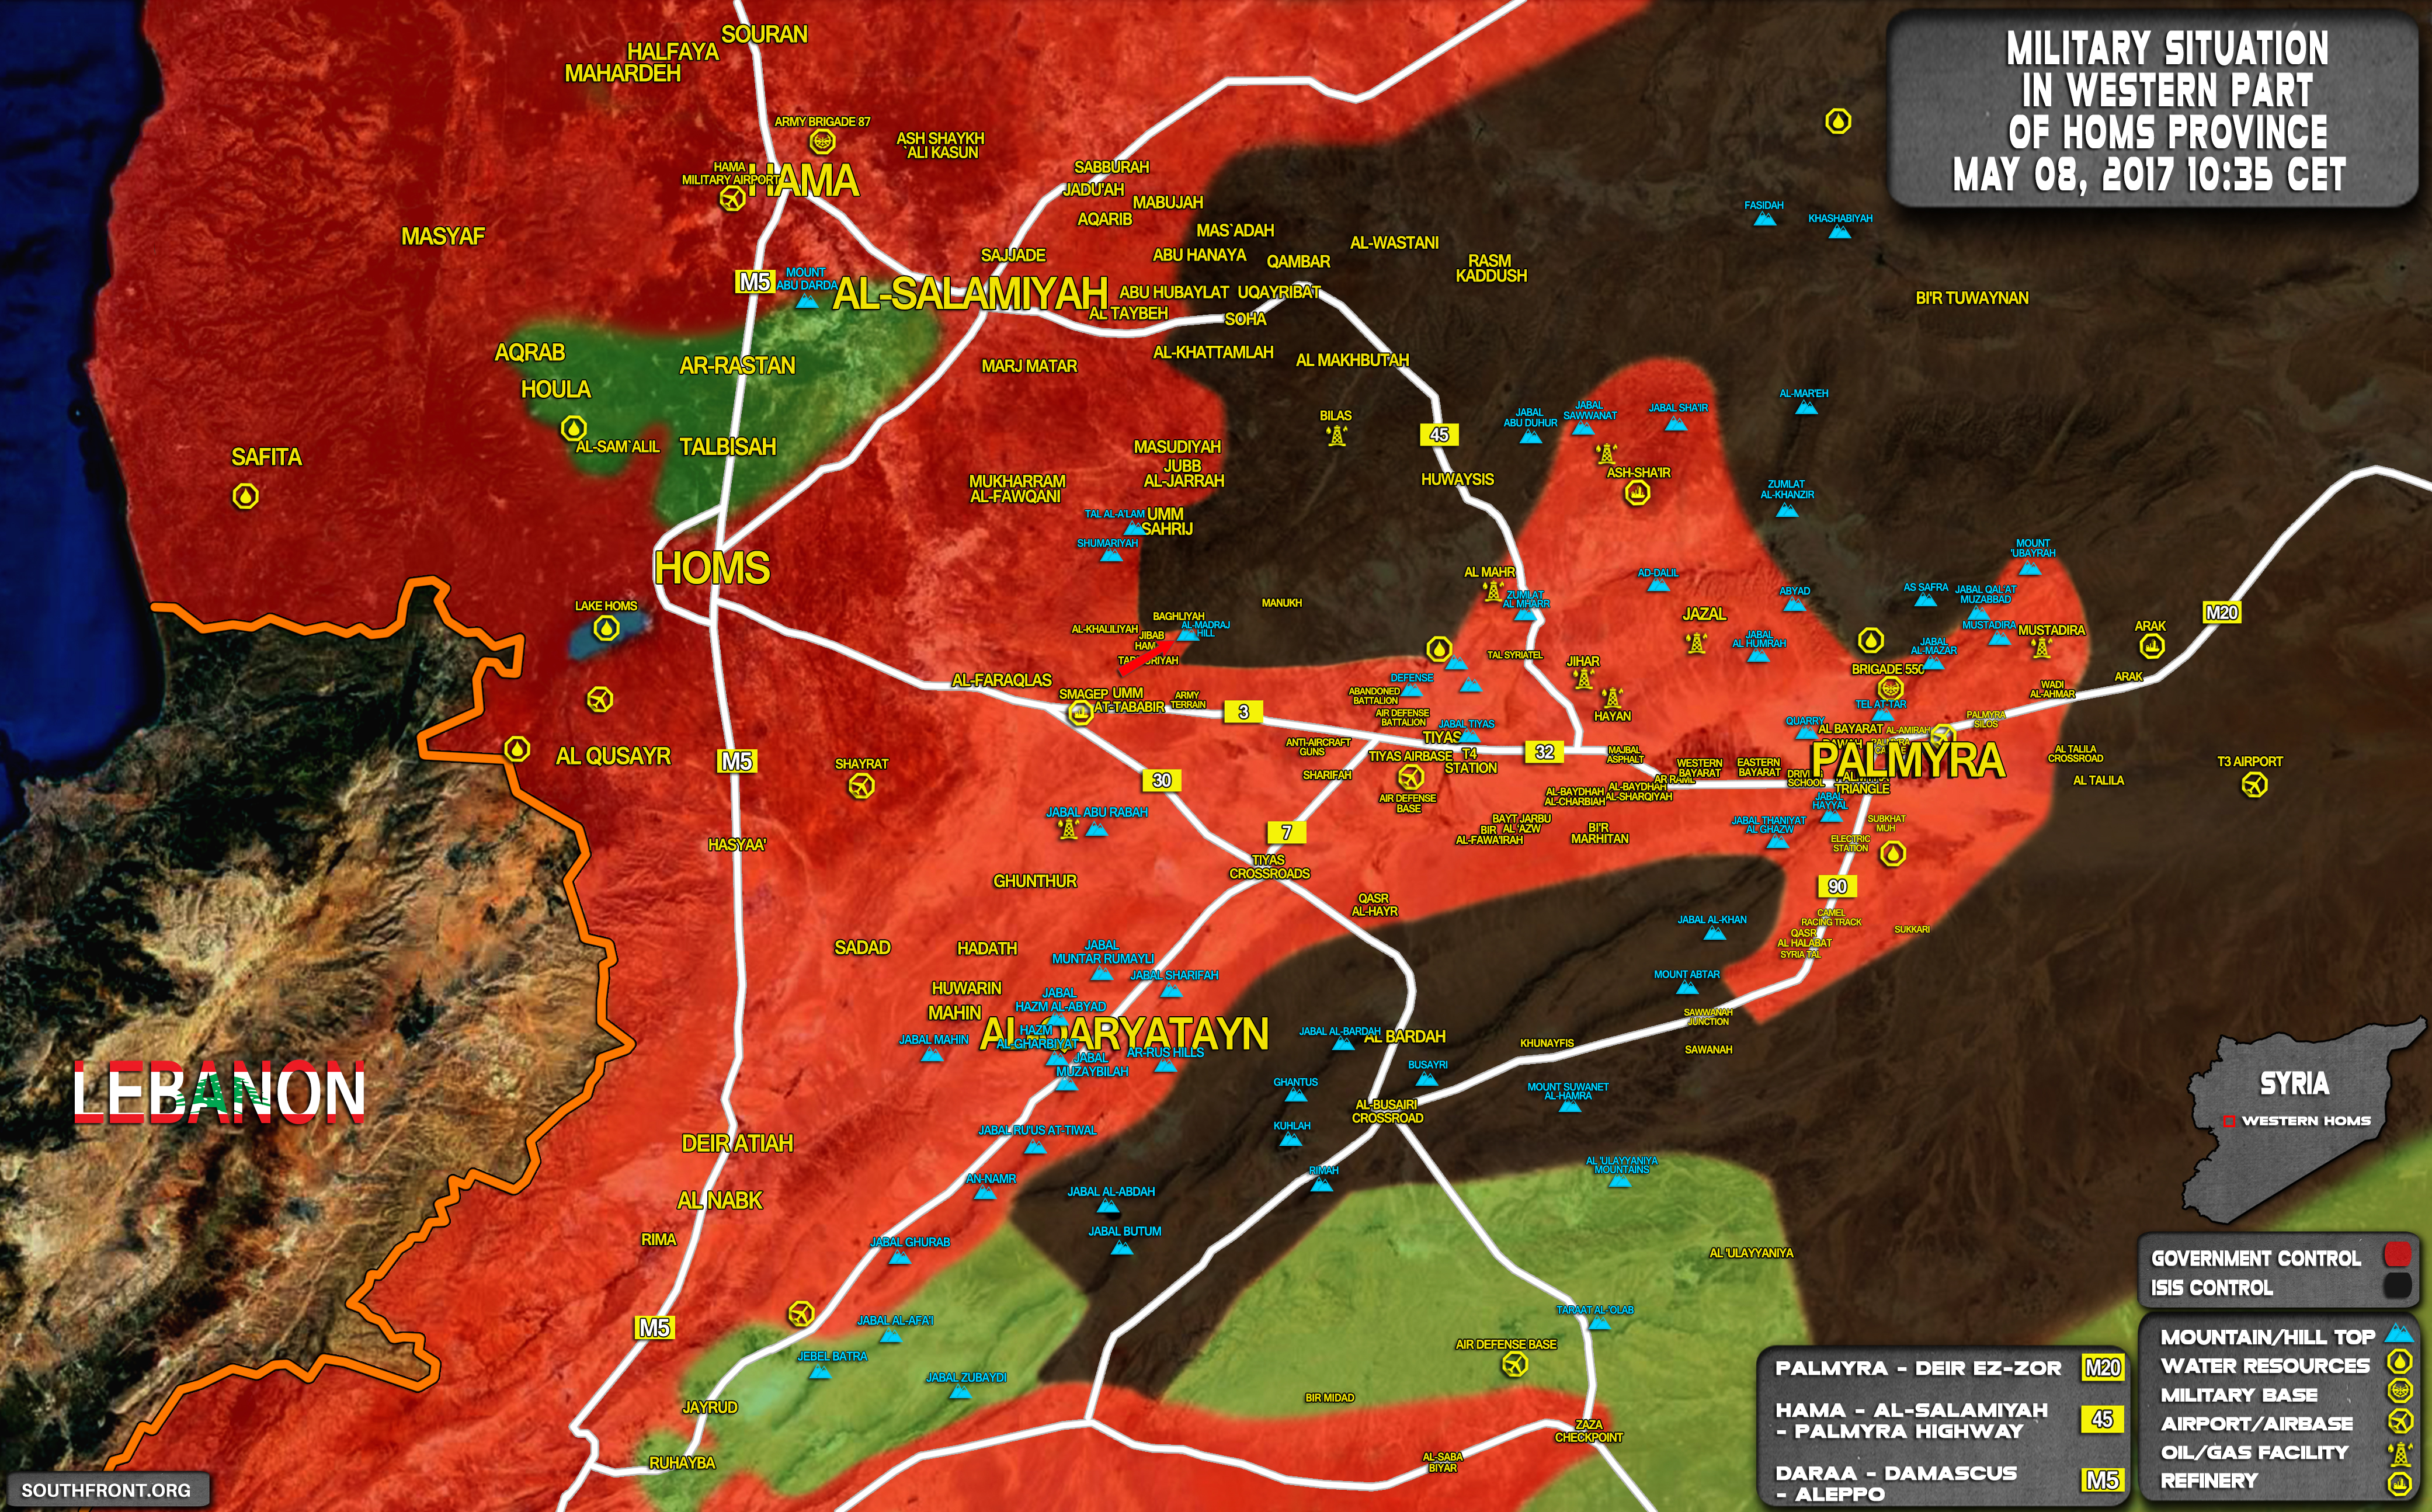 Syrian Army Advanced Into Militant-held Area West Of al-Seen Military Airbase